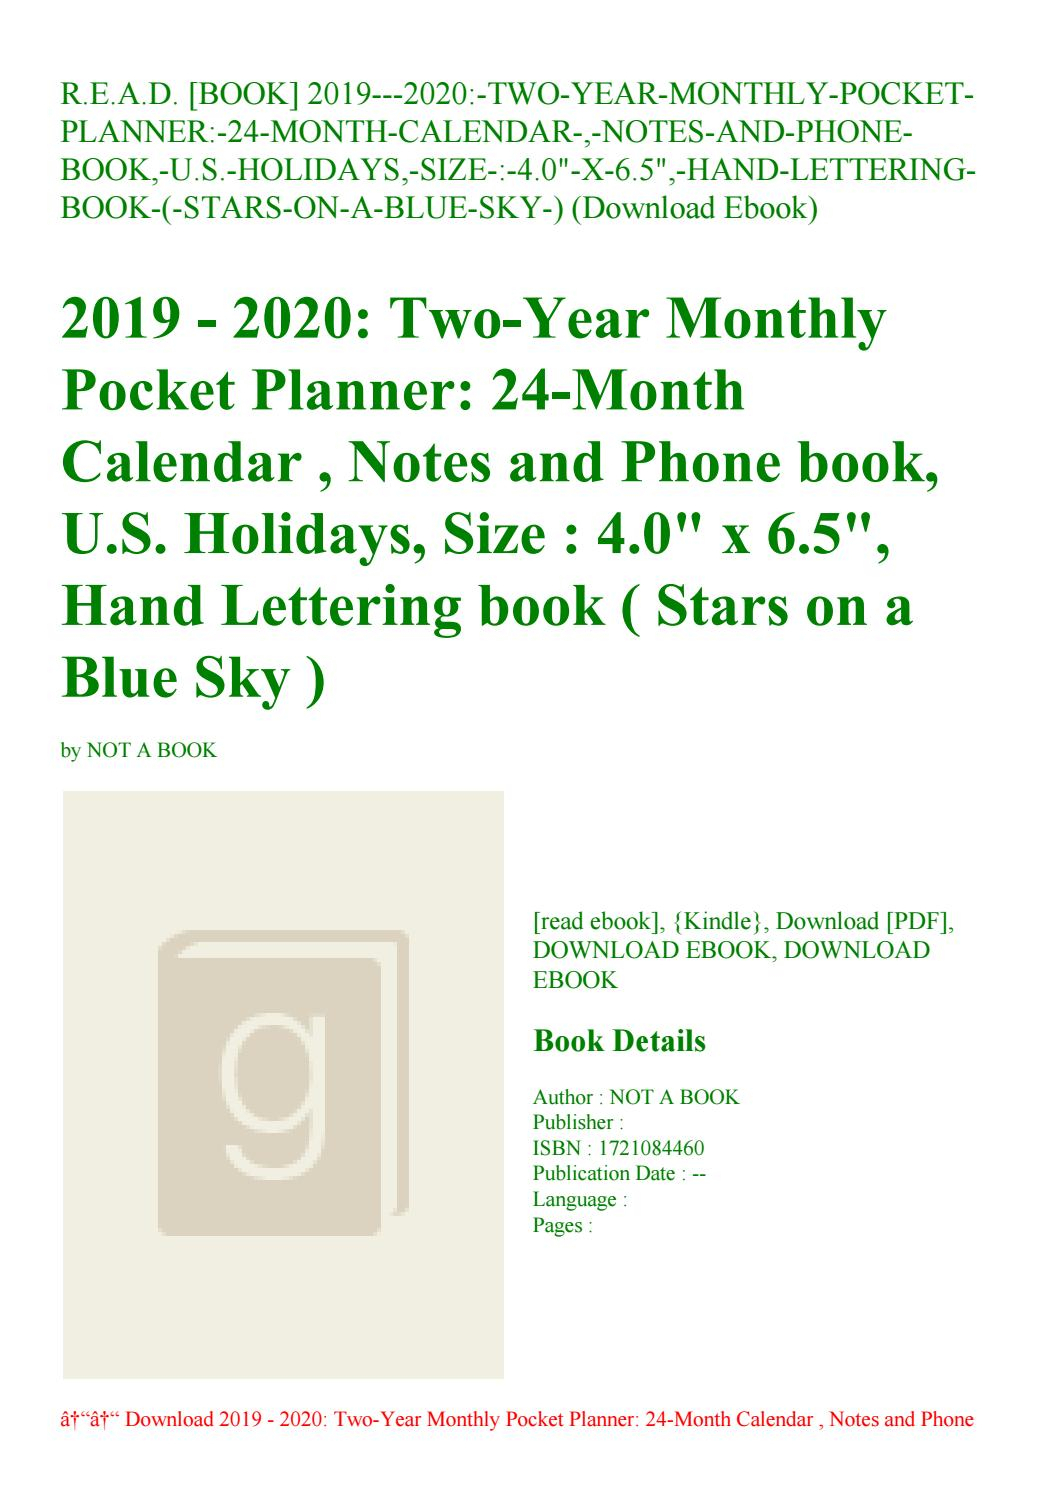 R.e.a.d. [Book] 2019---2020-Two-Year-Monthly-Pocket-Planner-24-Month intended for U Of R 2020 Calendar